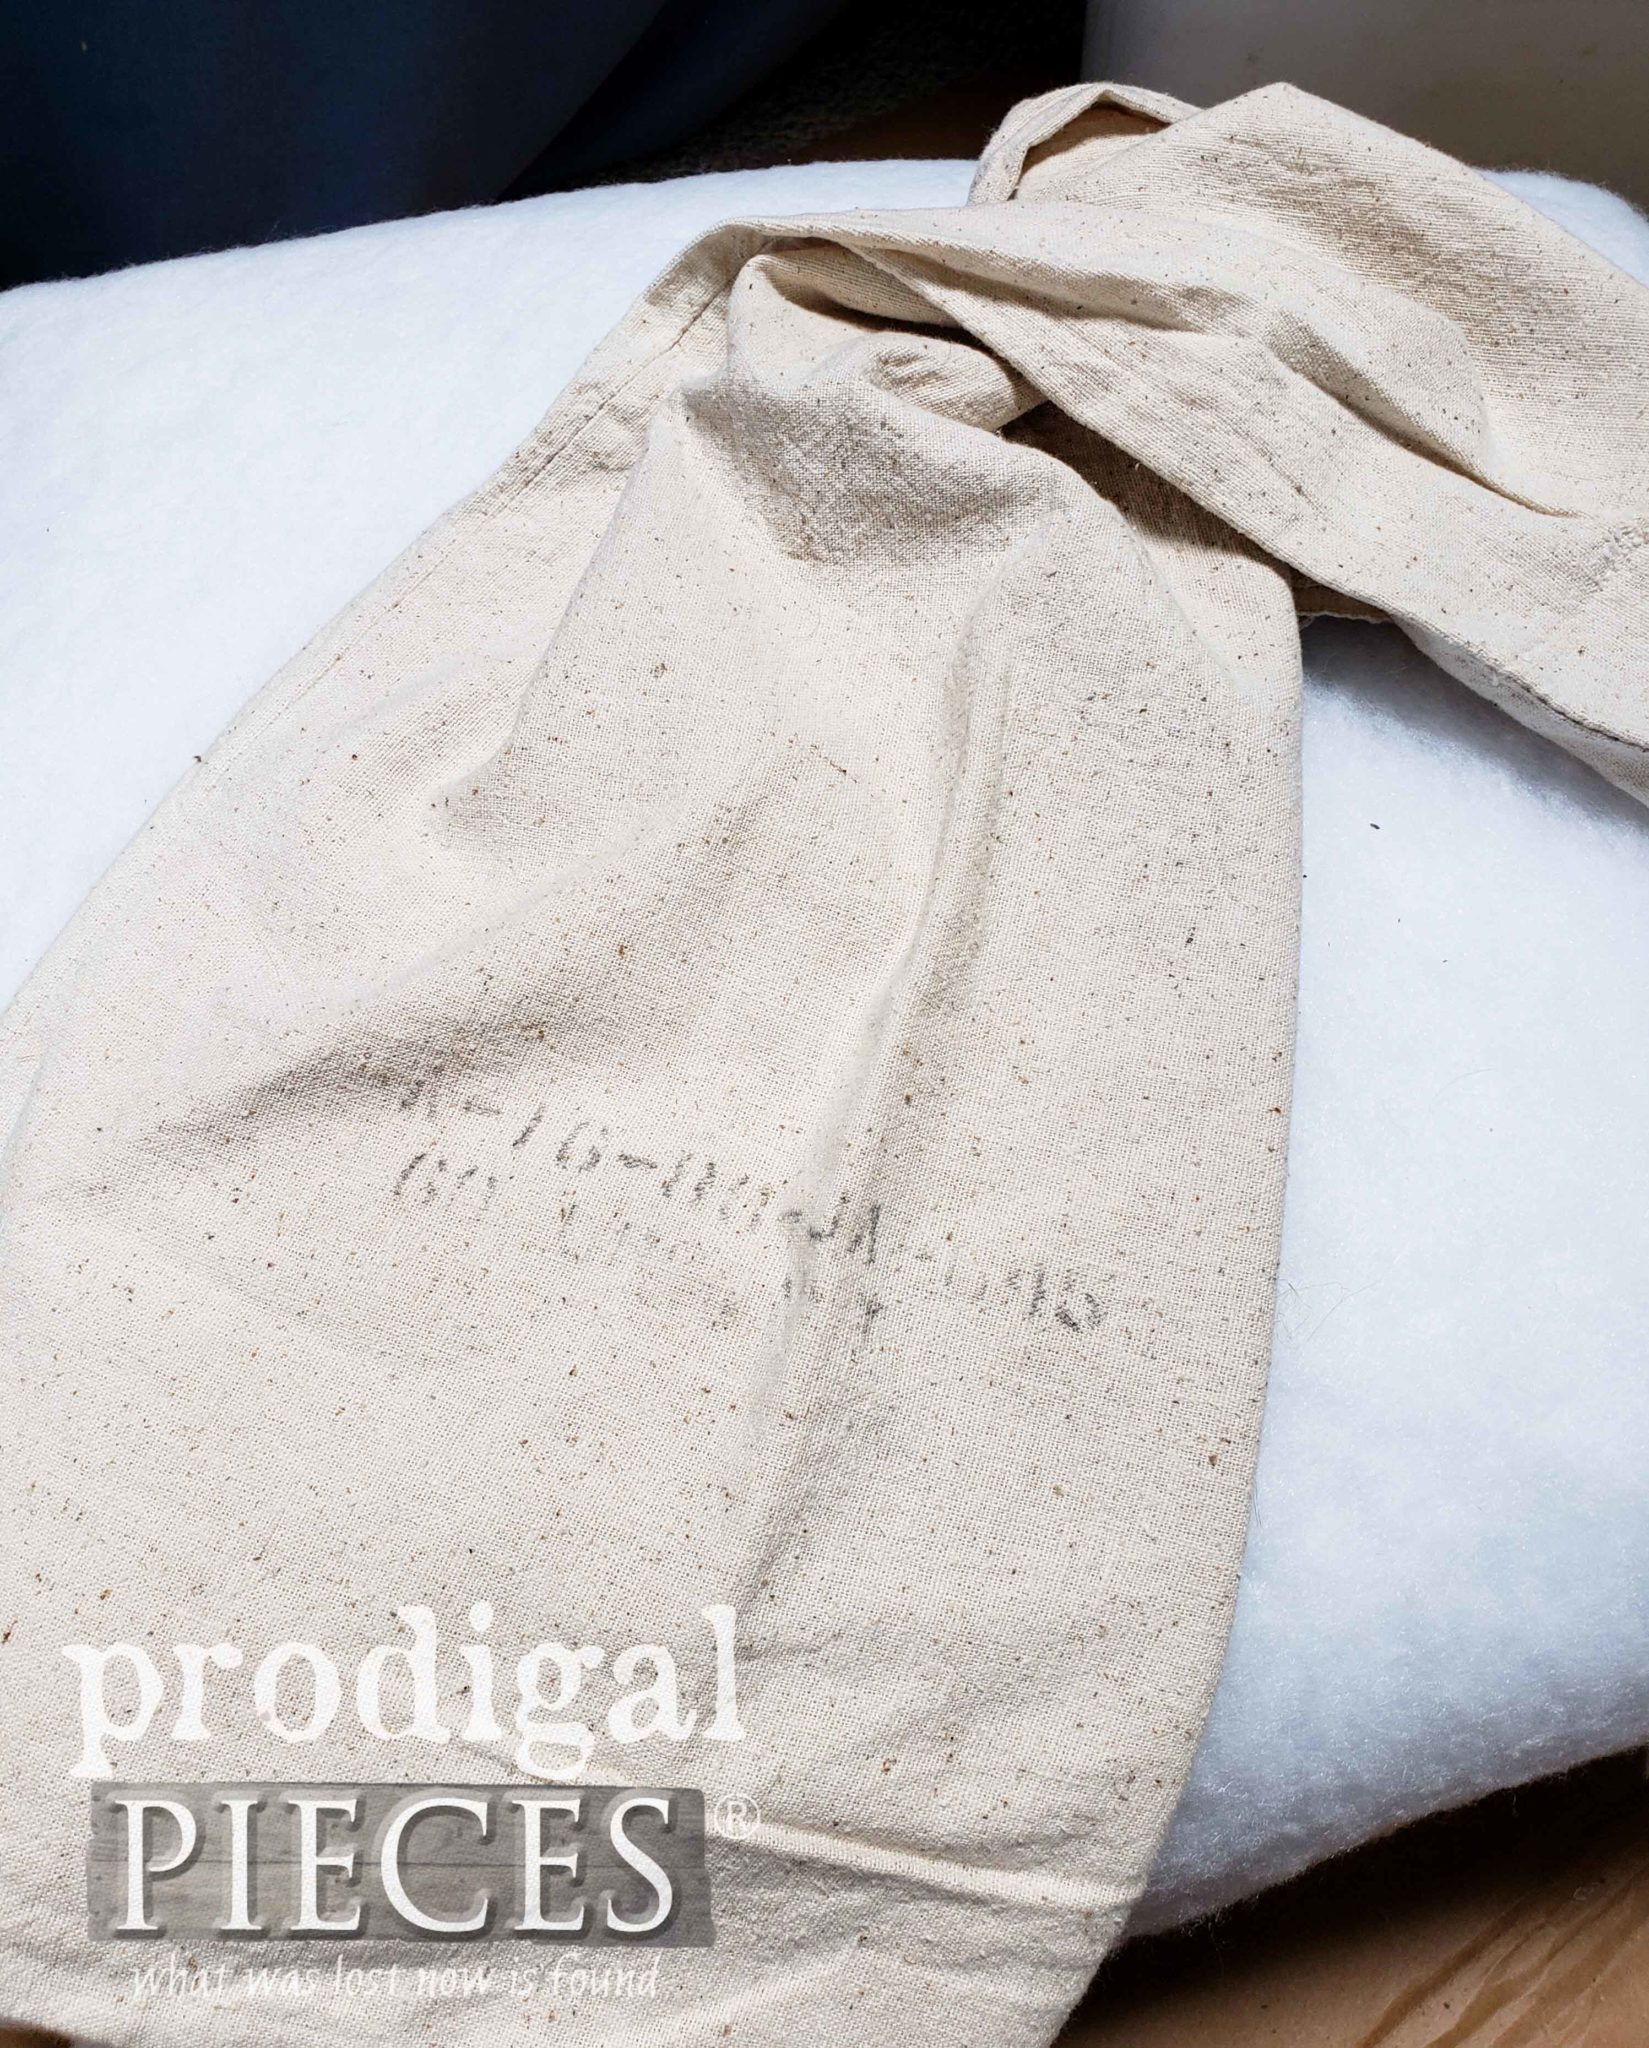 Vintage Farmhouse Feed Sack for Deconstructed Ottoman by Larissa of Prodigal Pieces | prodigalpieces.com